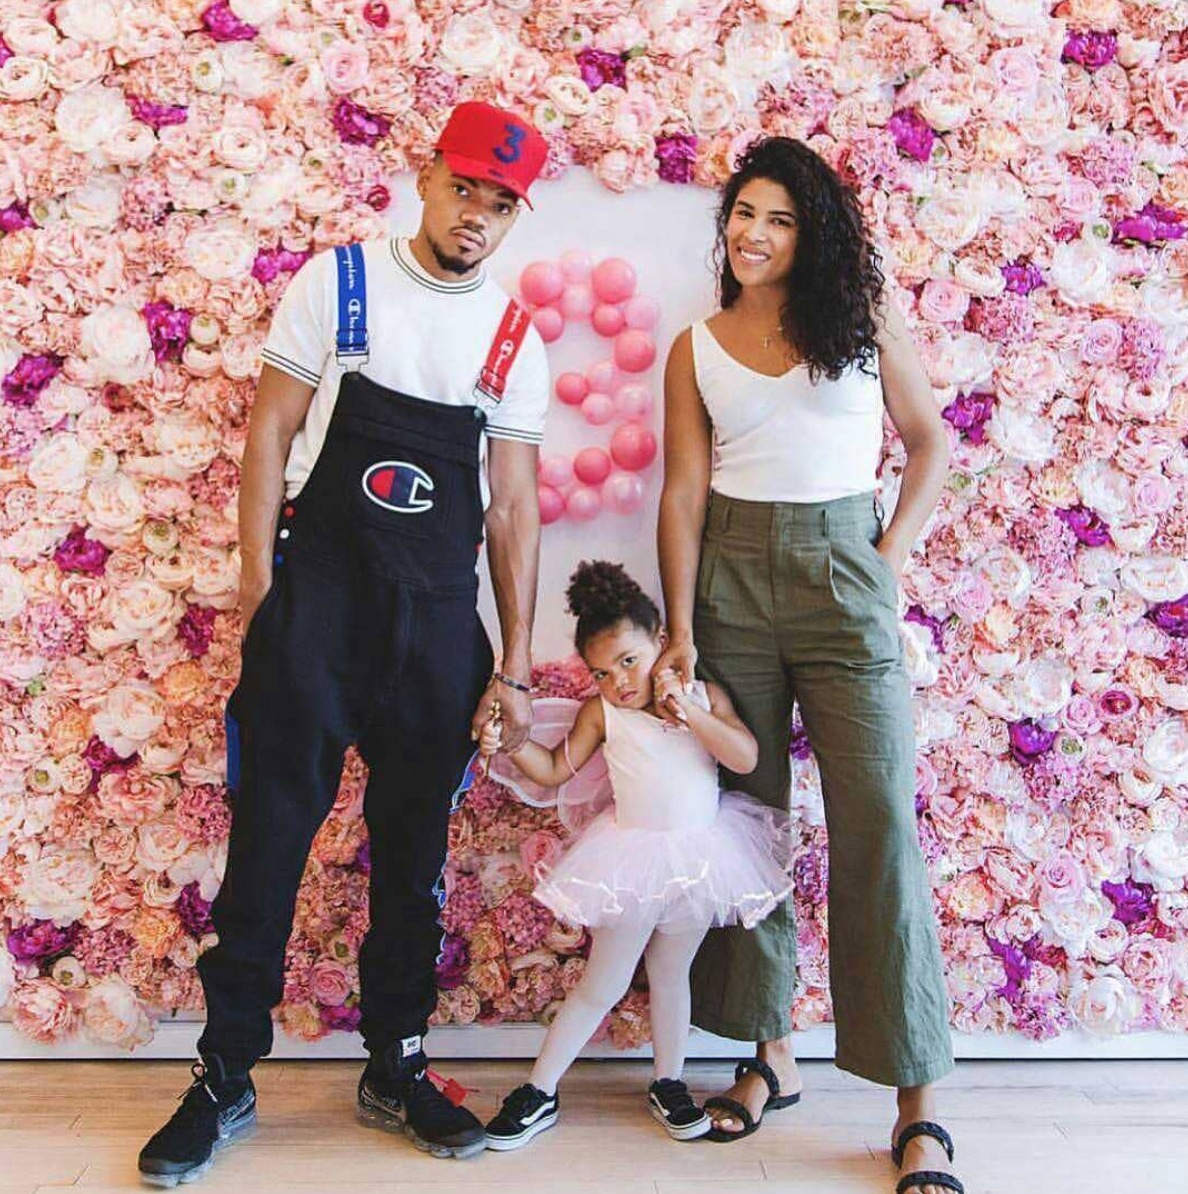 Kirsten Corley and Chance the Rapper at their eldest daughter Kensli's third birthday party